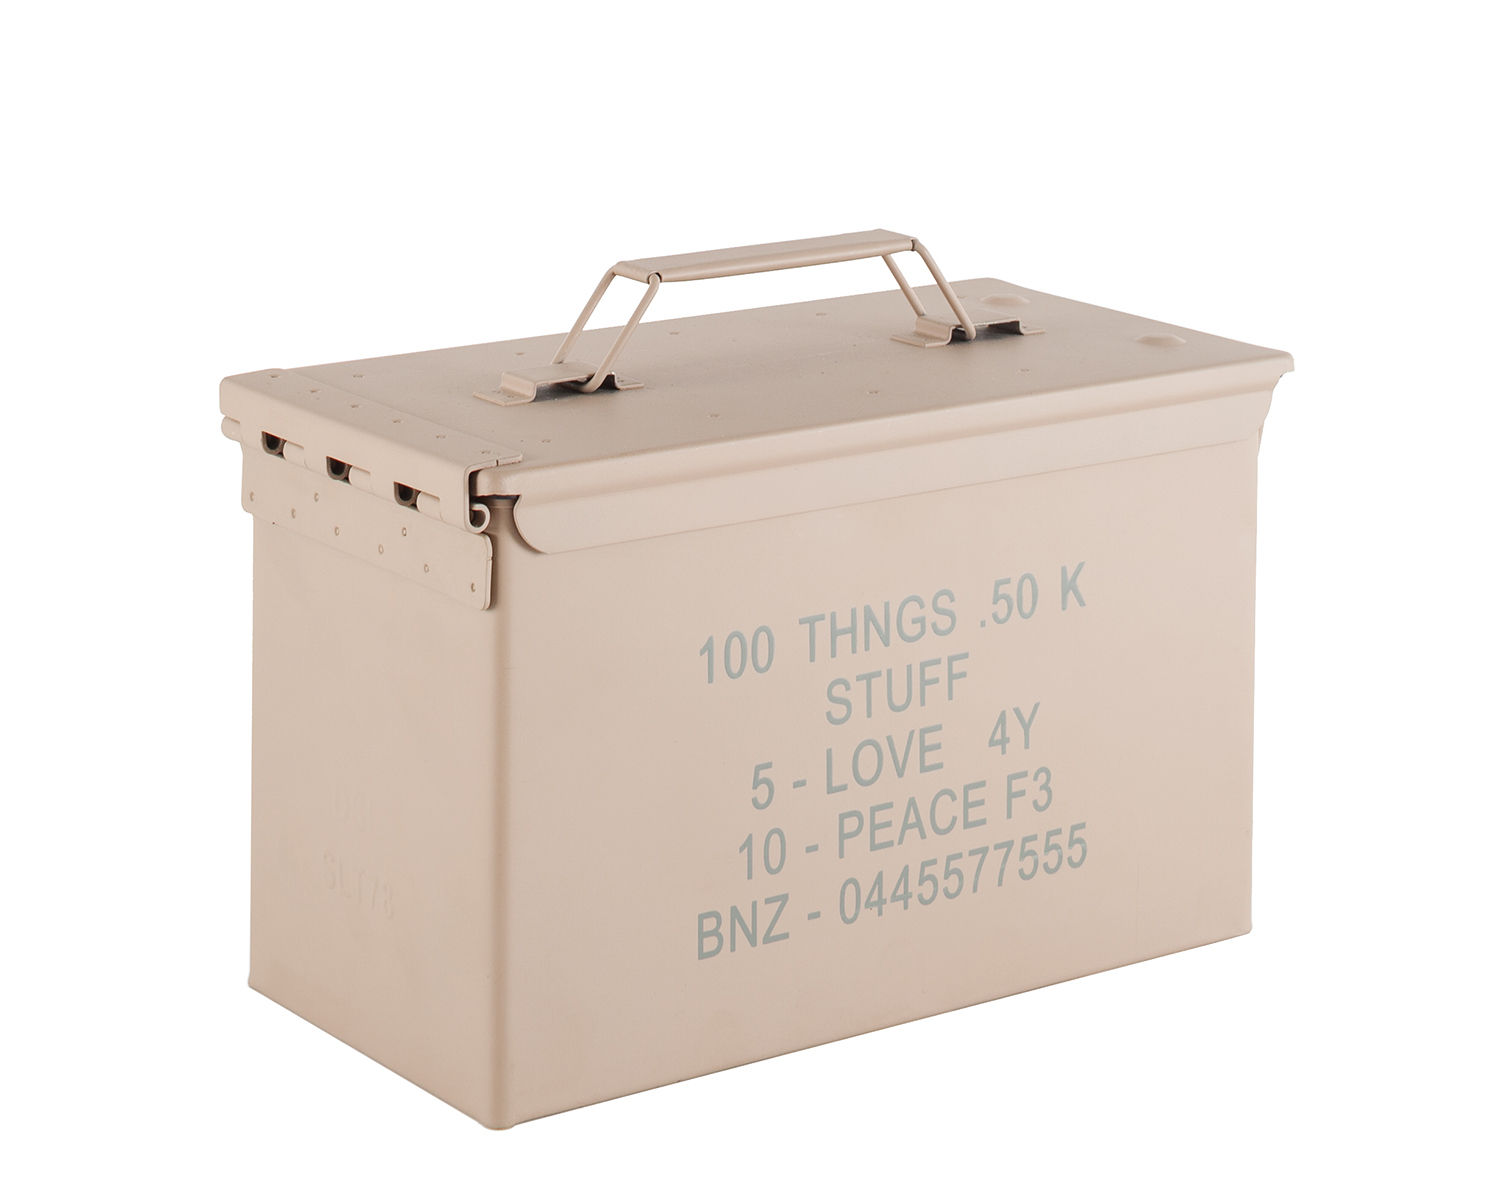 Decoration - Decorative Boxes - Peace Bullet Box - / Metal - L 30 x H 19 cm by Diesel living with Seletti - Pastel pink - Tinted metal